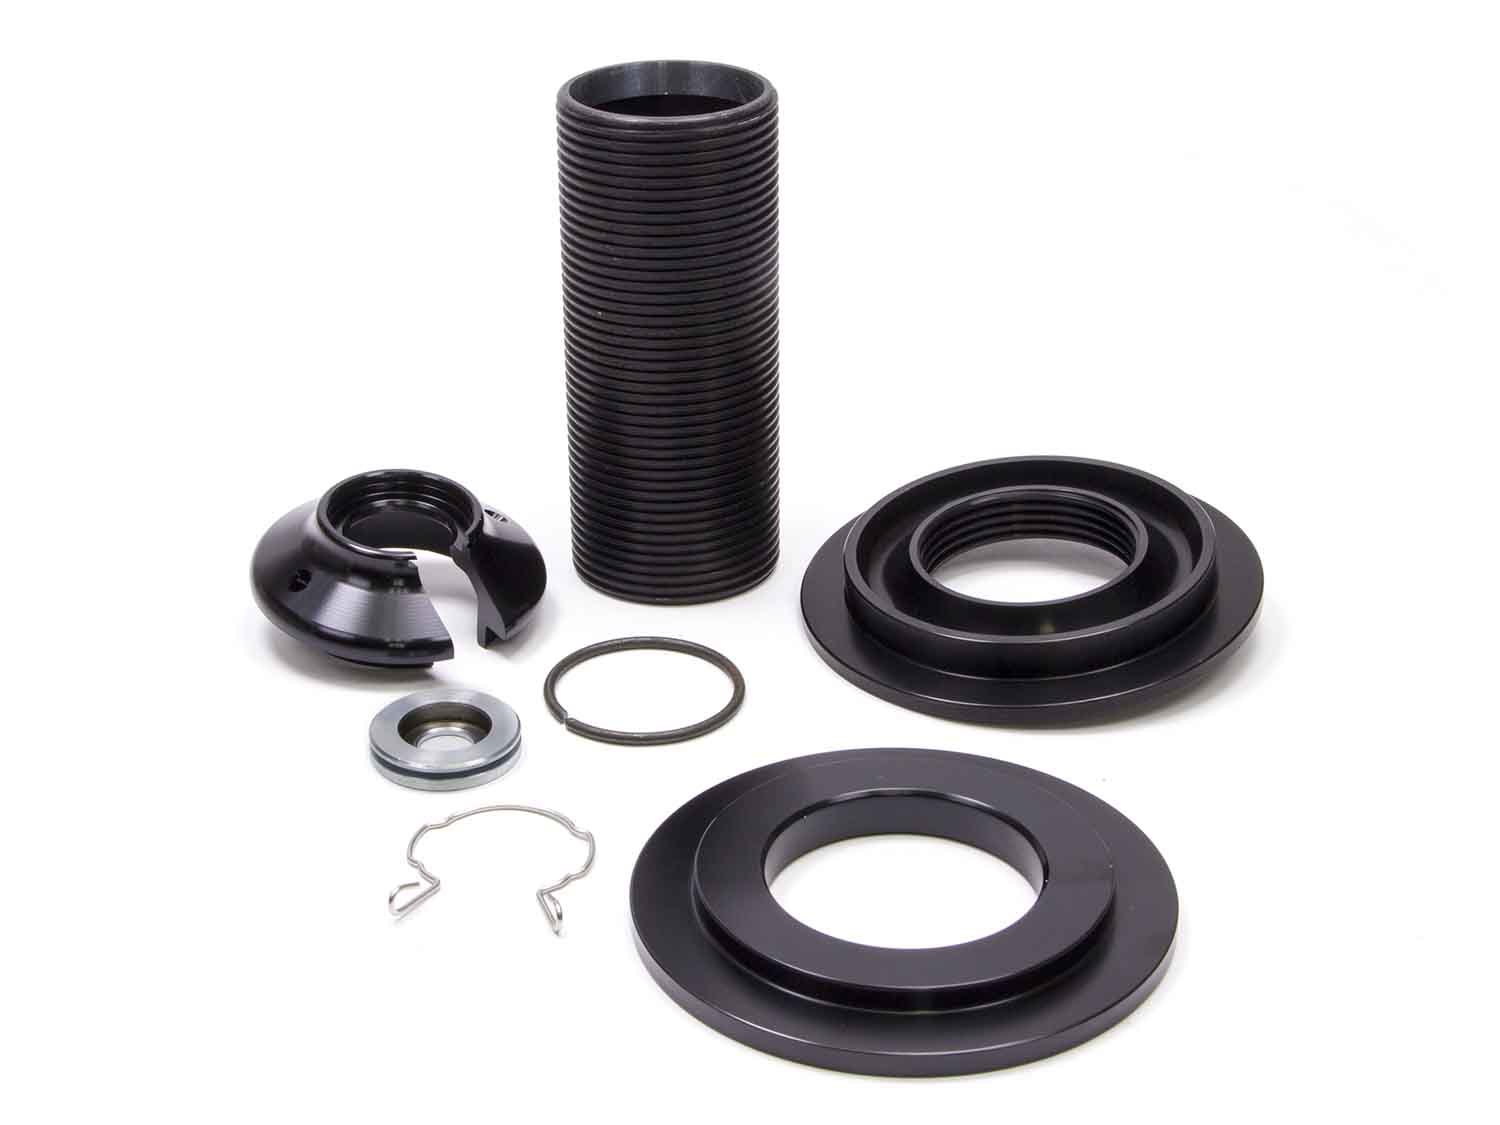 Pro Shock C327WB Coil-Over Kit, 5.000 in ID Spring, 5.5 in Sleeve, Aluminum, Black Anodized, WB-Series Pro Shock, Kit